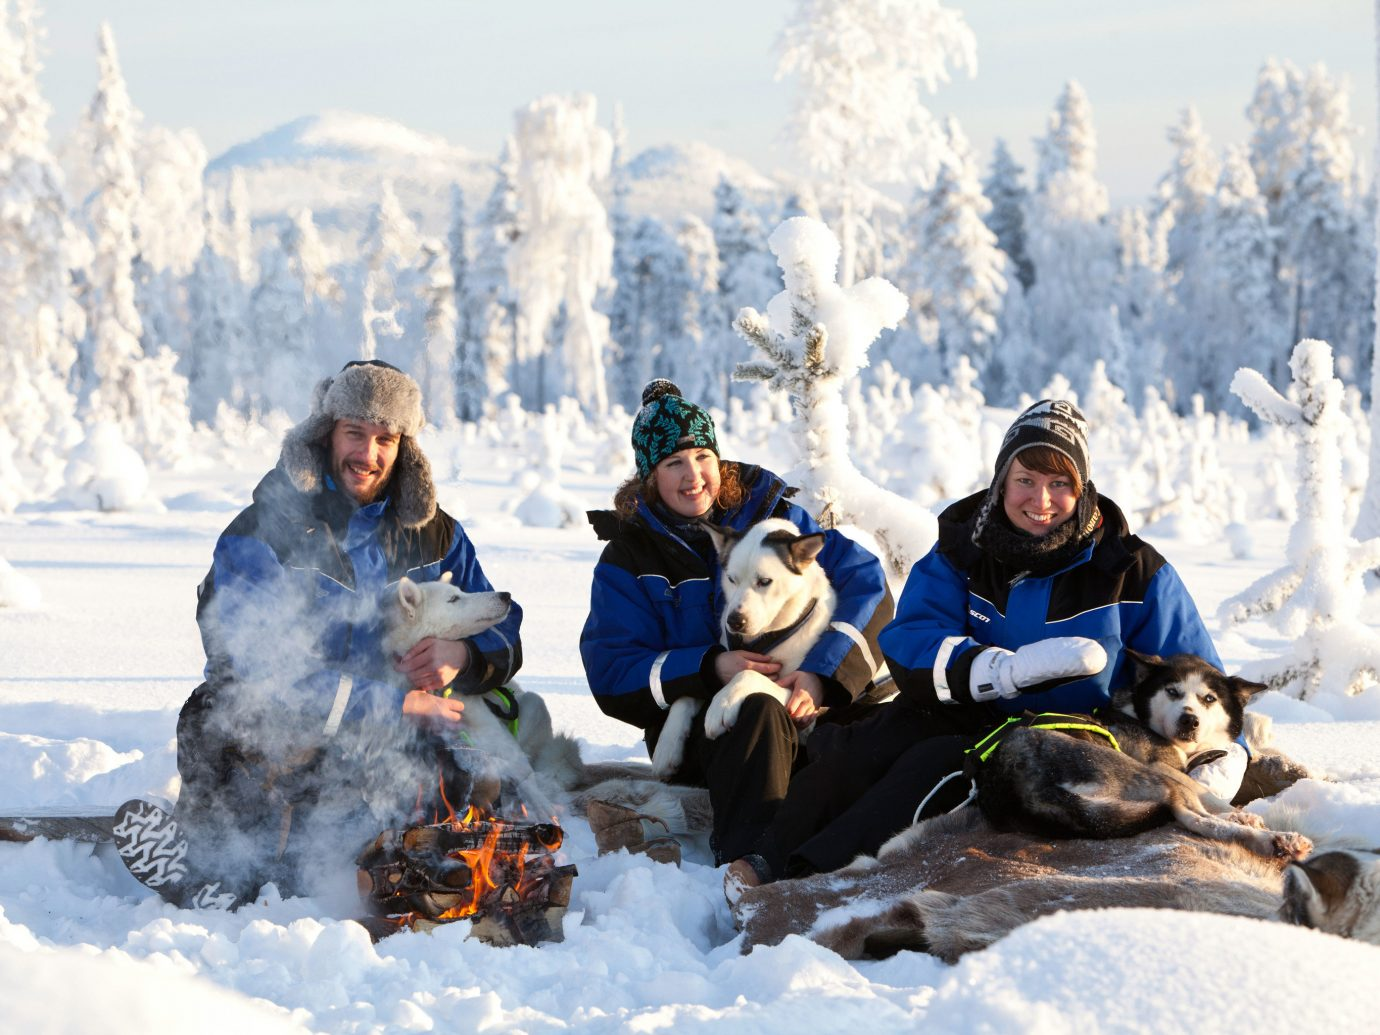 Trip Ideas snow outdoor Dog person Winter transport vehicle season people footwear sled winter sport sledding snowshoe posing